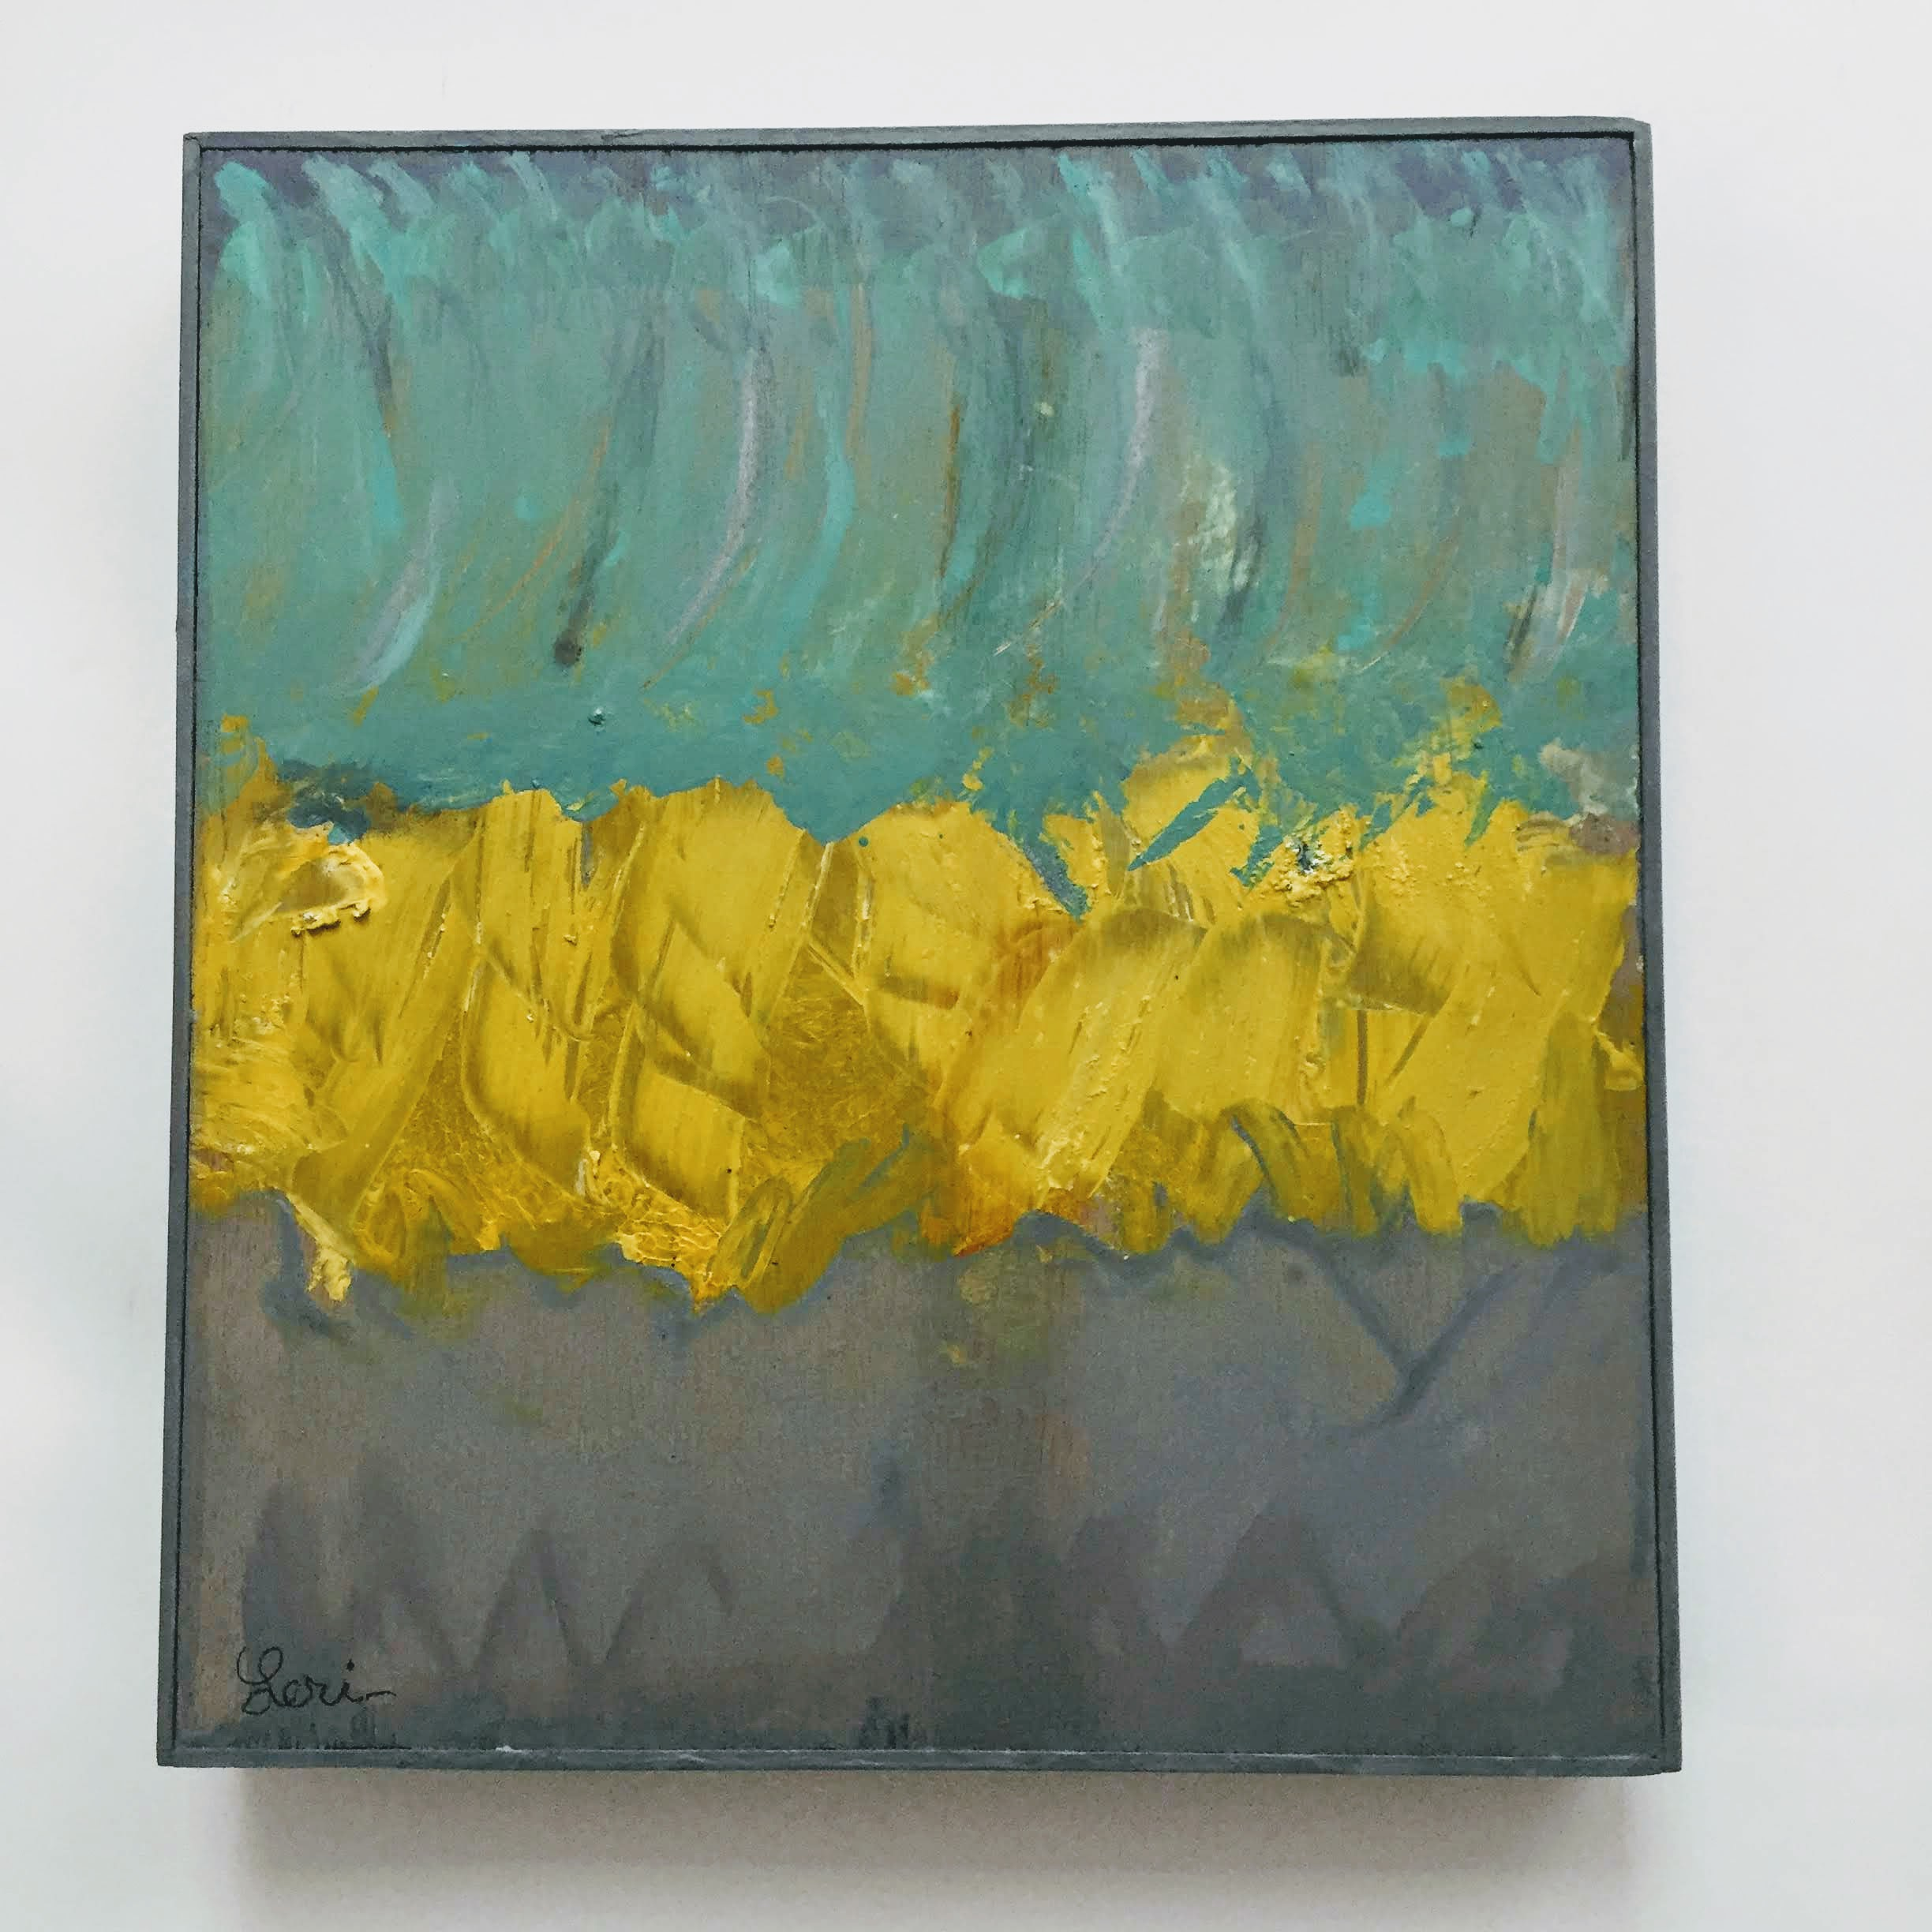 Turquoise and Yellow, 2019, acrylic paint on wood panel, 16x 14 in, $900